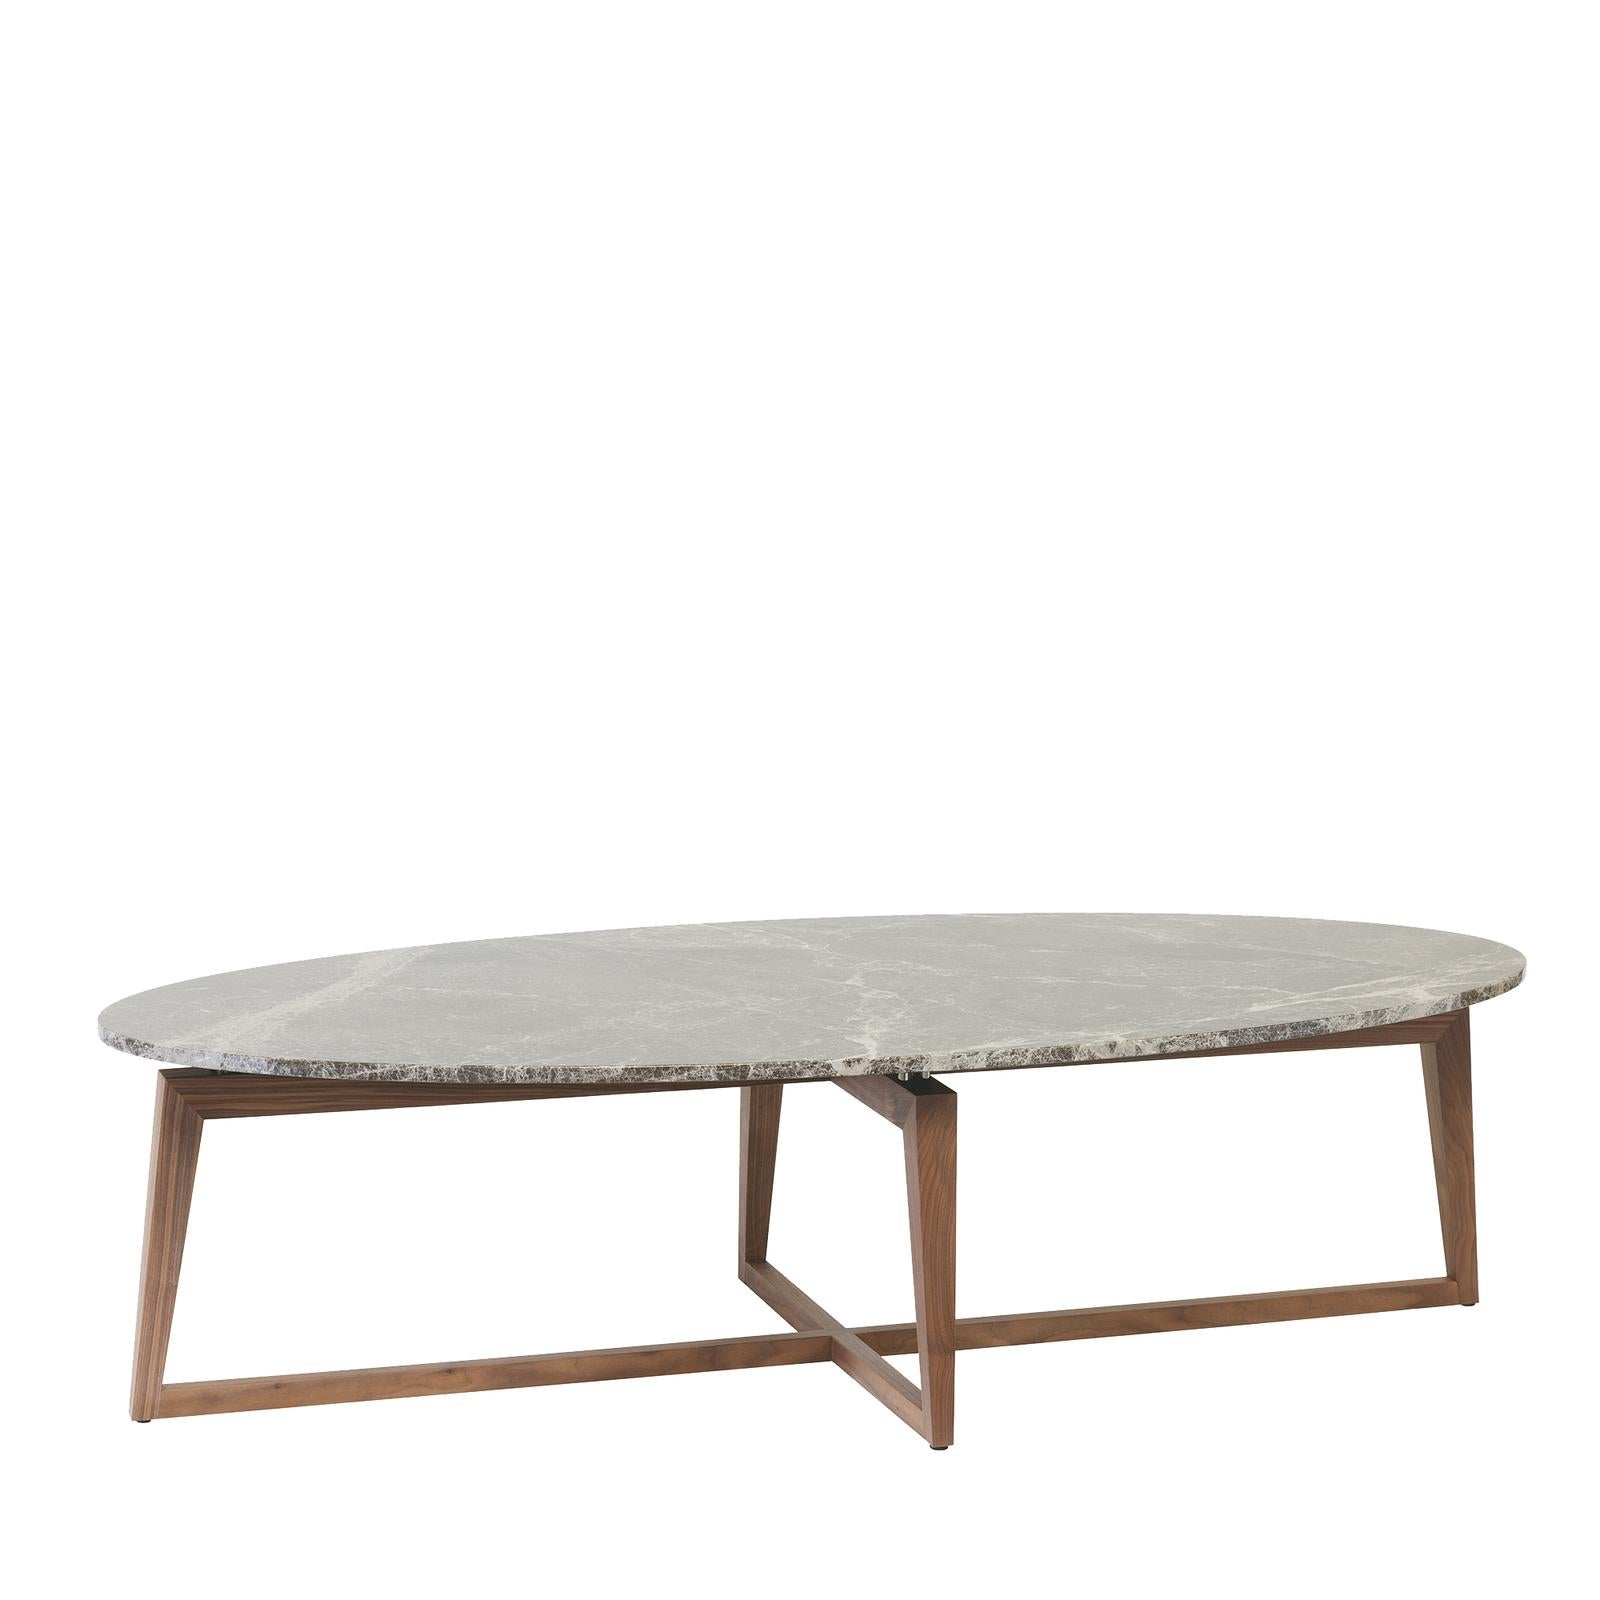 Charmant Zen Coffee Table For Sale